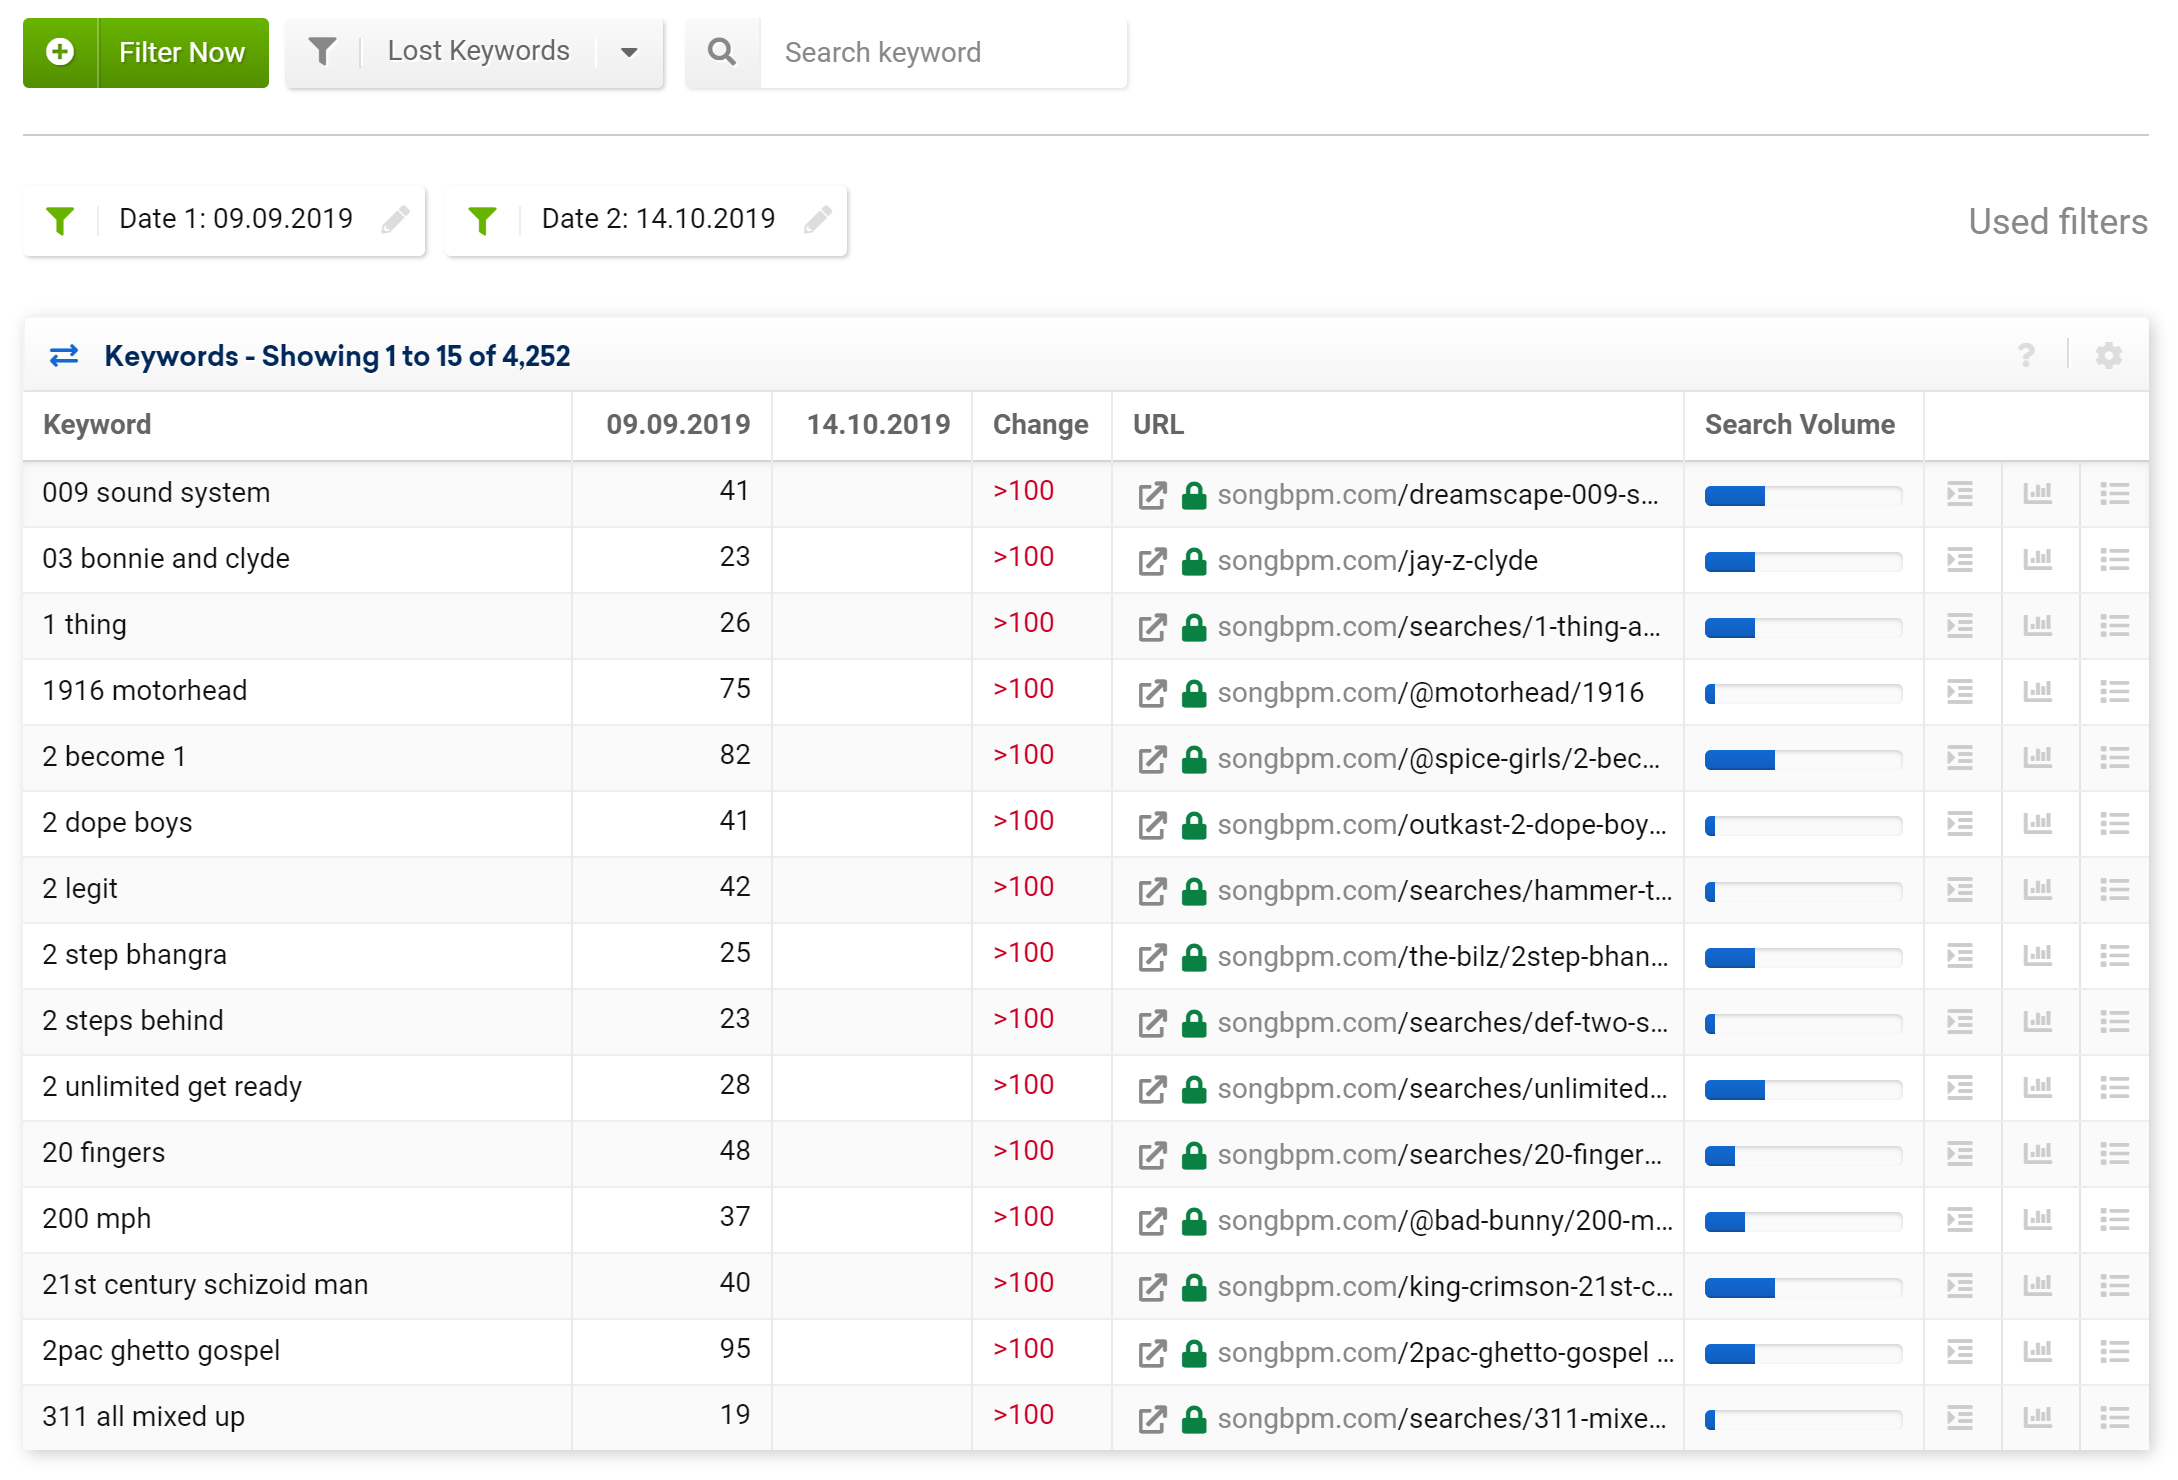 Sample of lost keywords for the domain songbpm.com